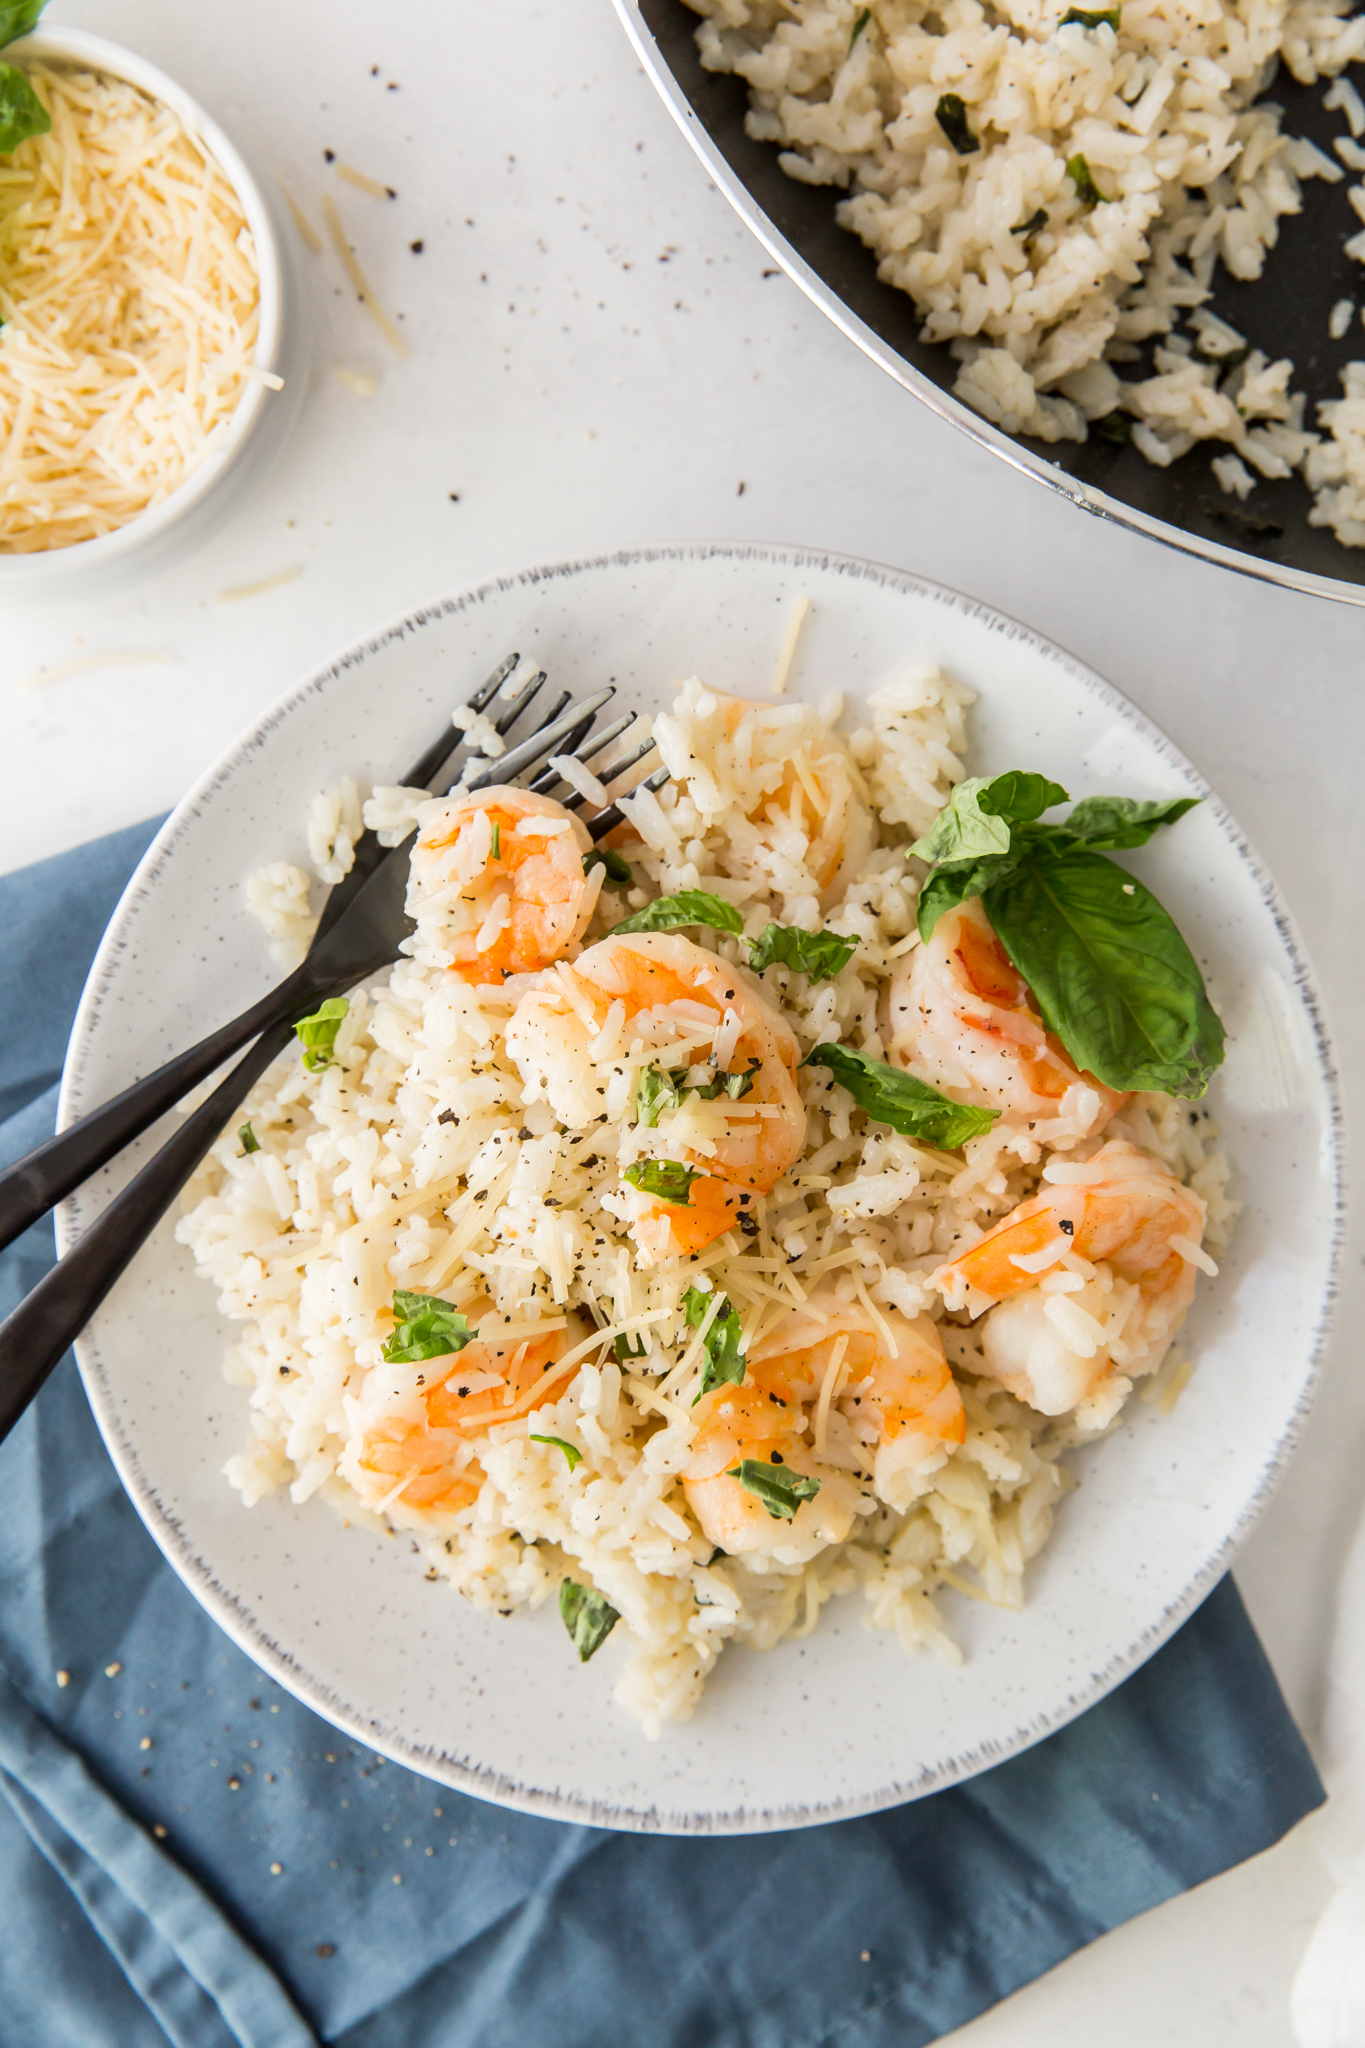 shrimp and rice on plate